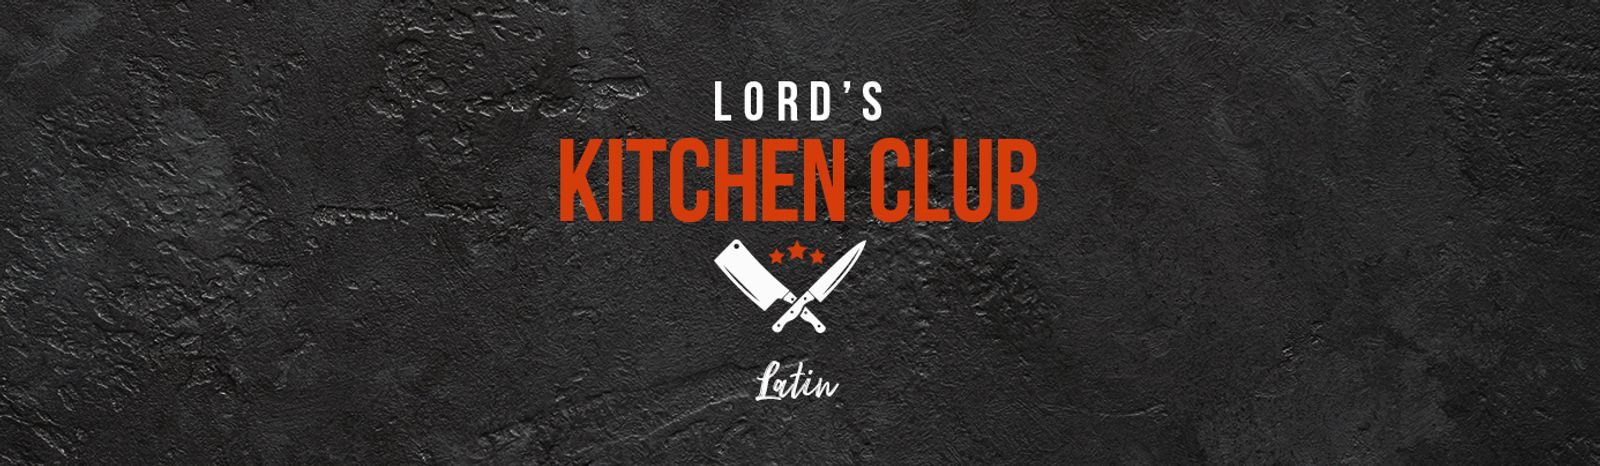 Lord's Kitchen Club - Latin